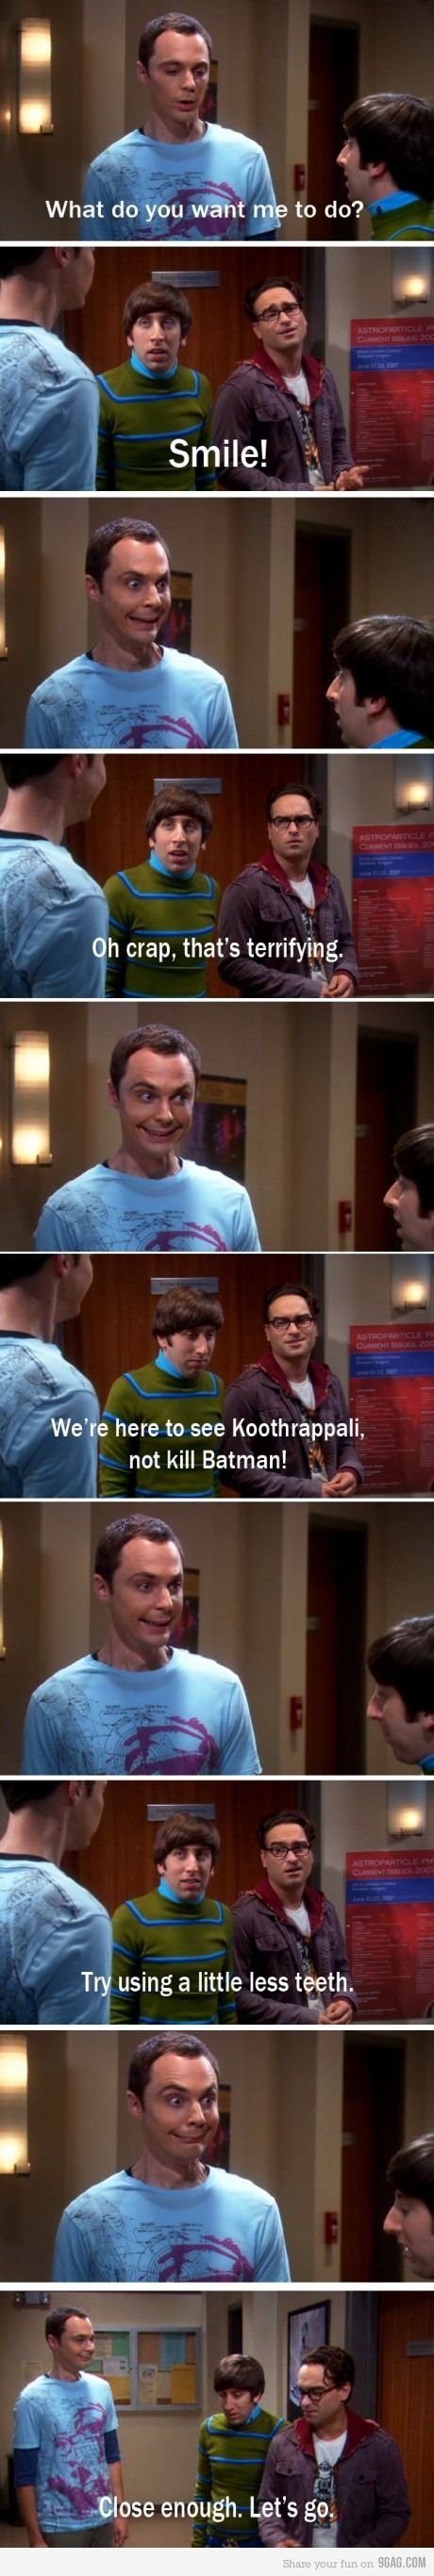 Creepy Sheldon smile :D